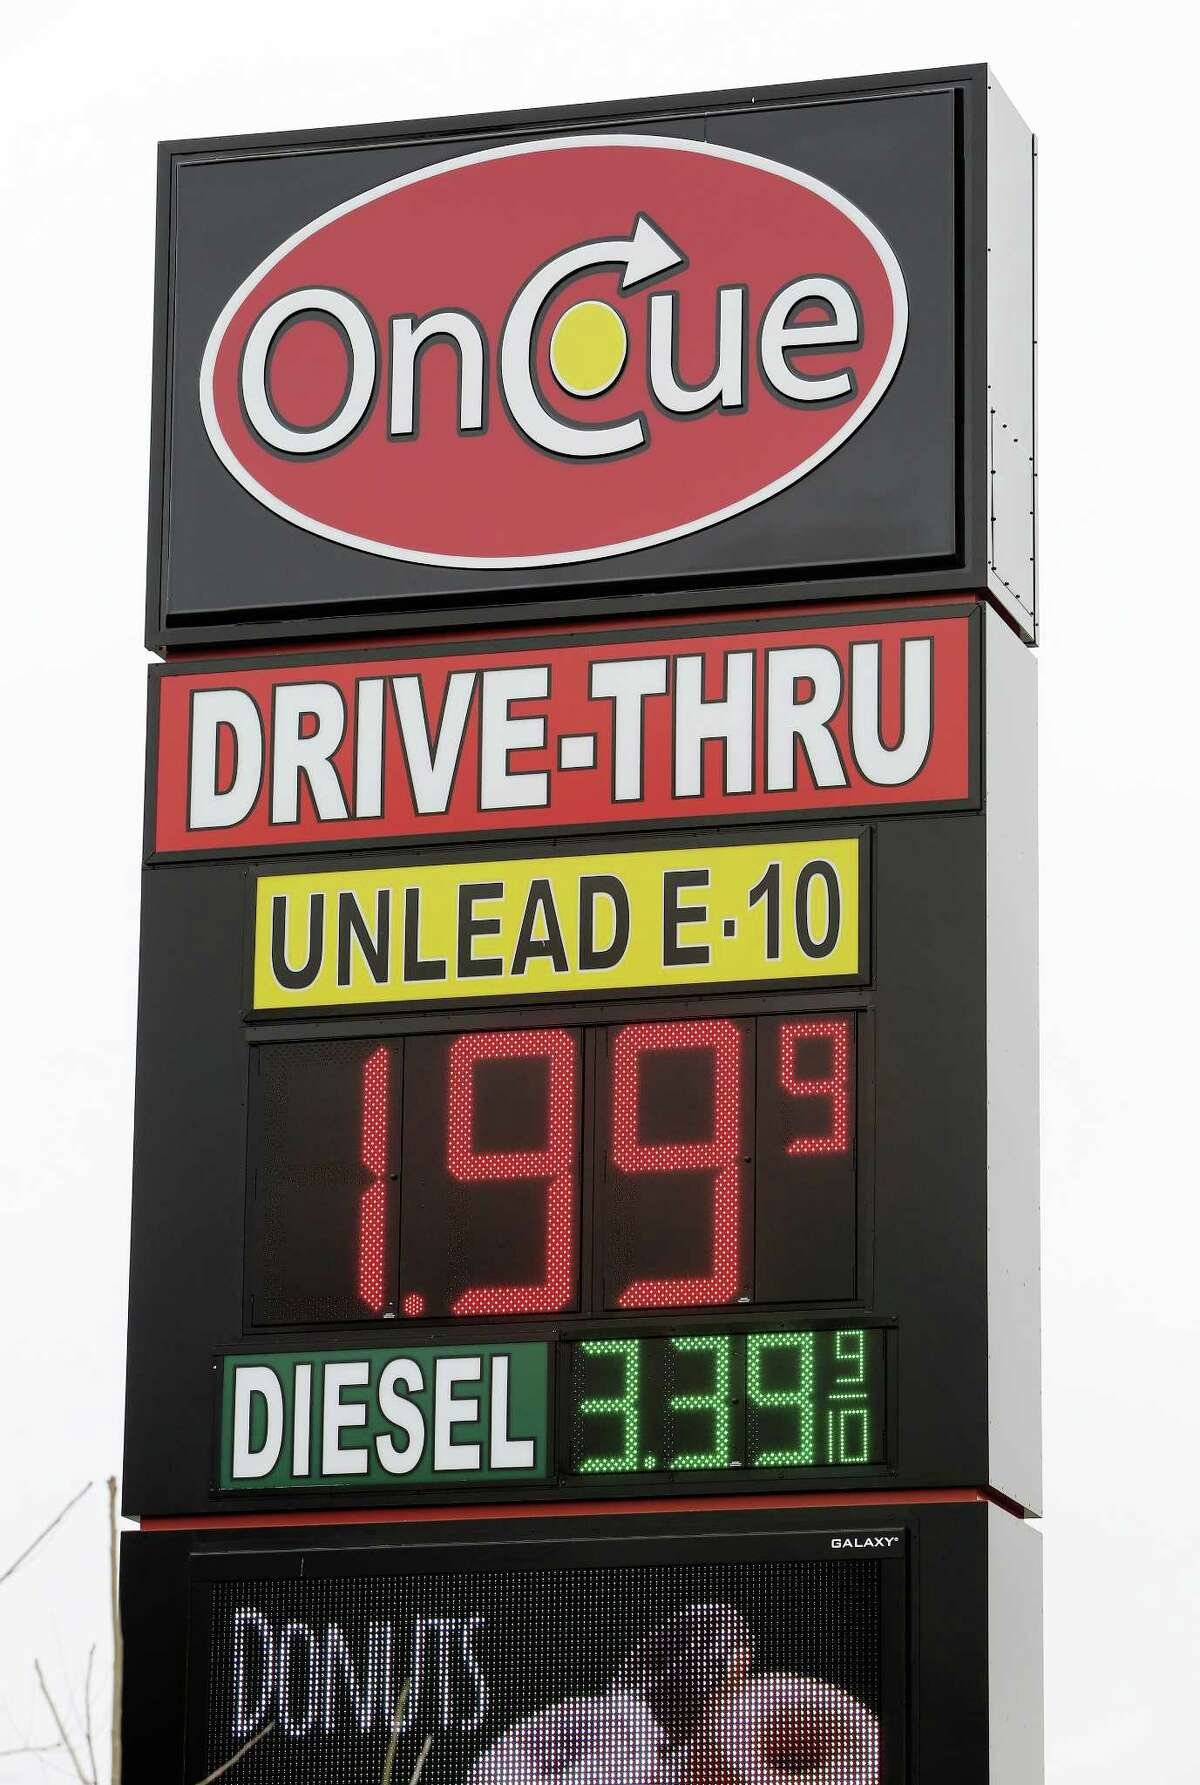 A sign displays the price for E-10 gasoline for $1.99 at the OnCue convenience store and gas station in Oklahoma City.